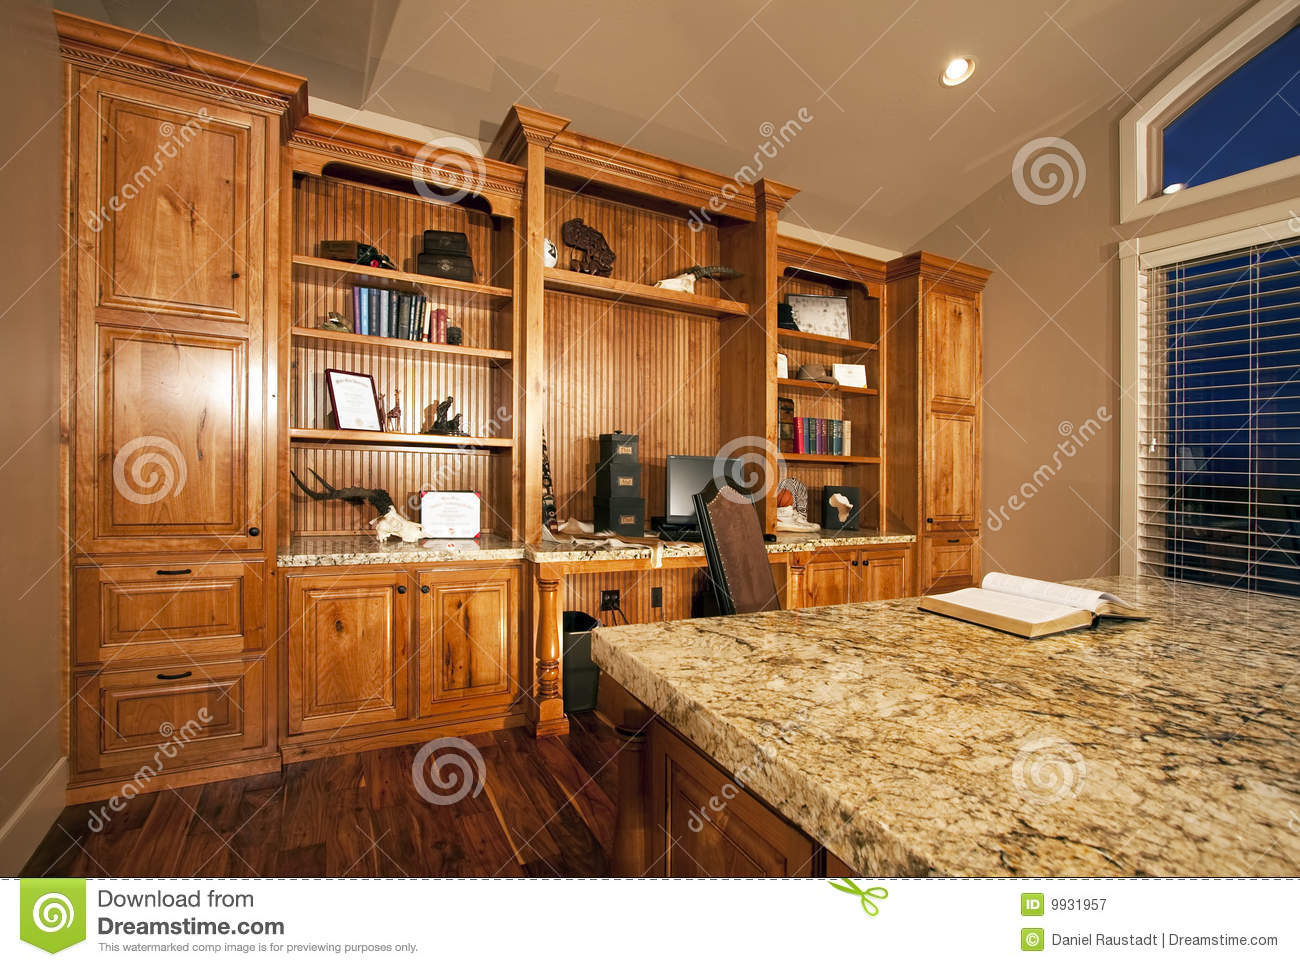 Kitchen cabinet clipart - Spacious Home Office Cabinets Royalty Free Stock